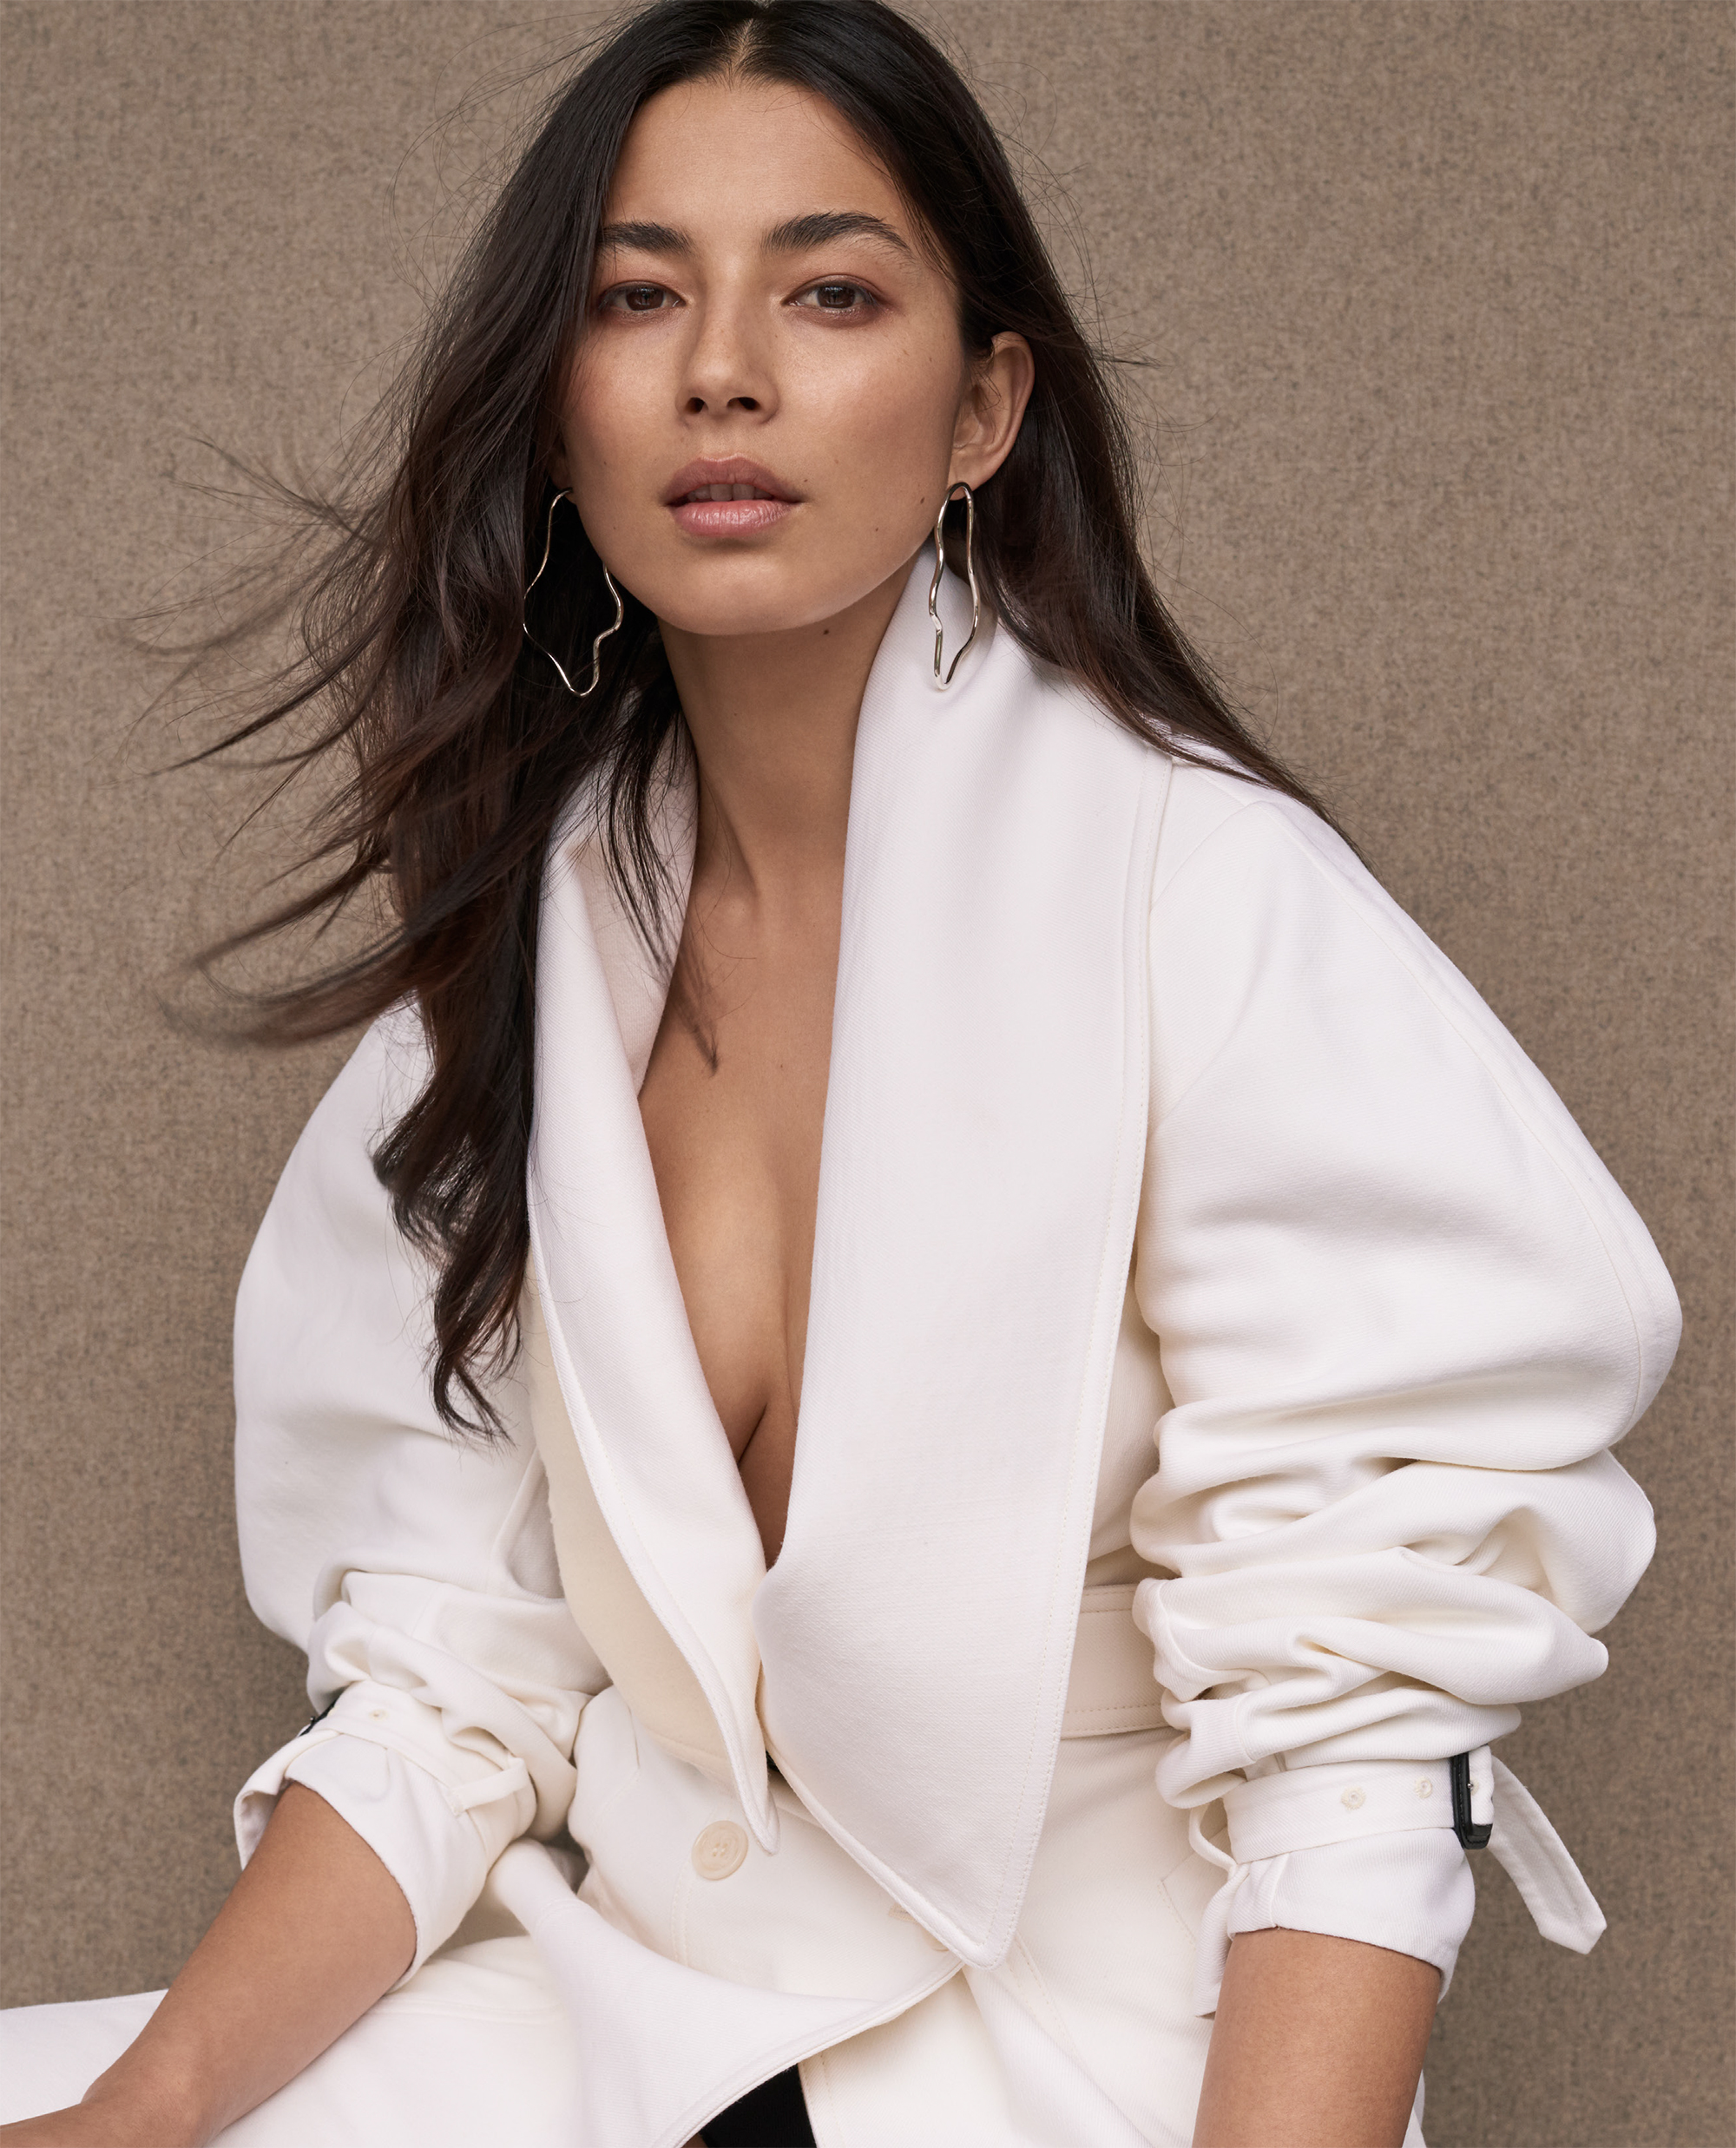 Jessica-Gomes-Instyle-coverstory-2017-5.jpg